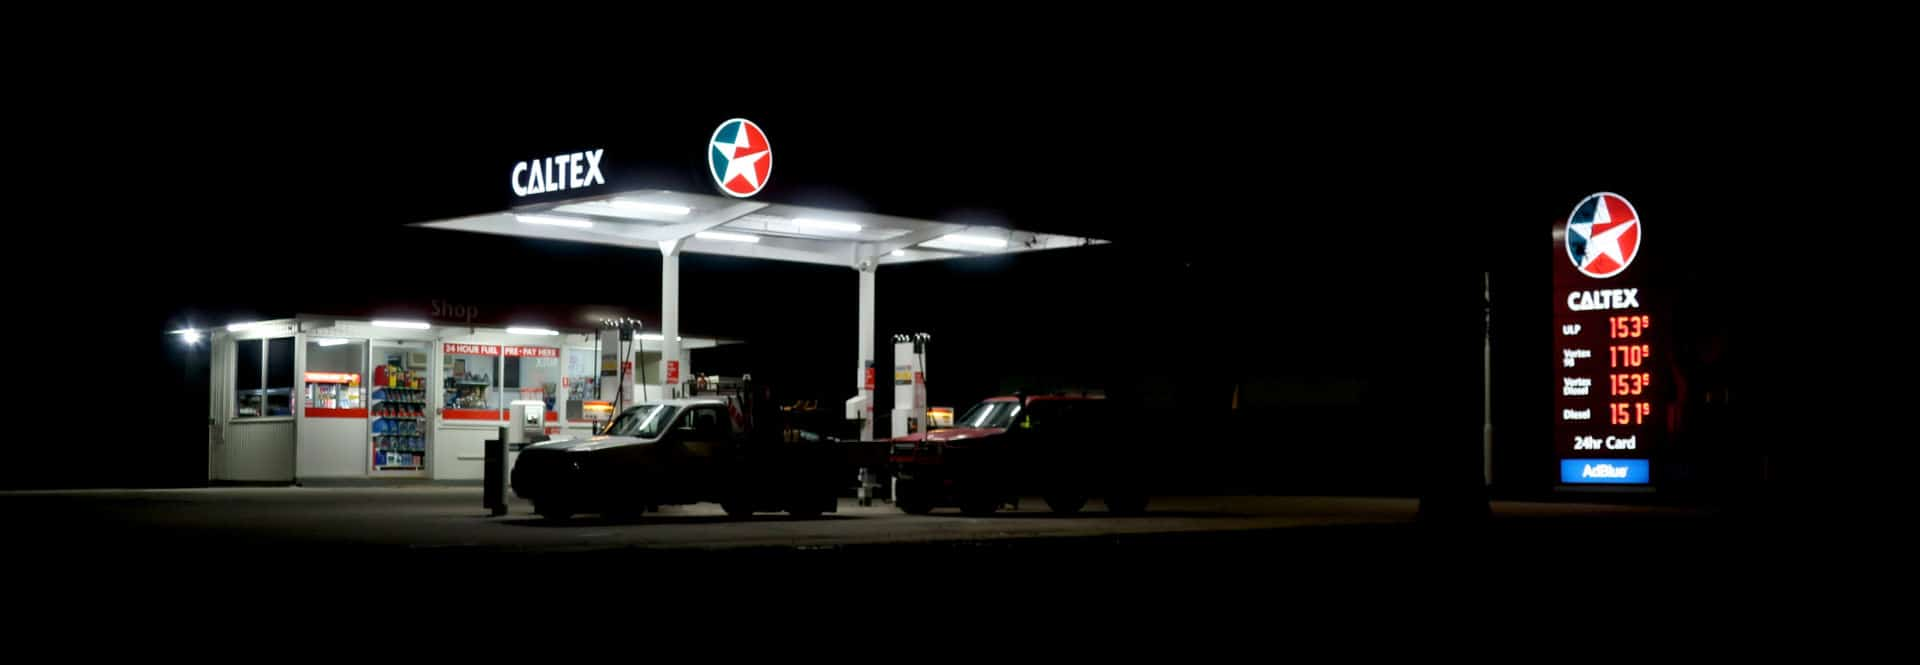 Simpons Fuel Service Station at Night